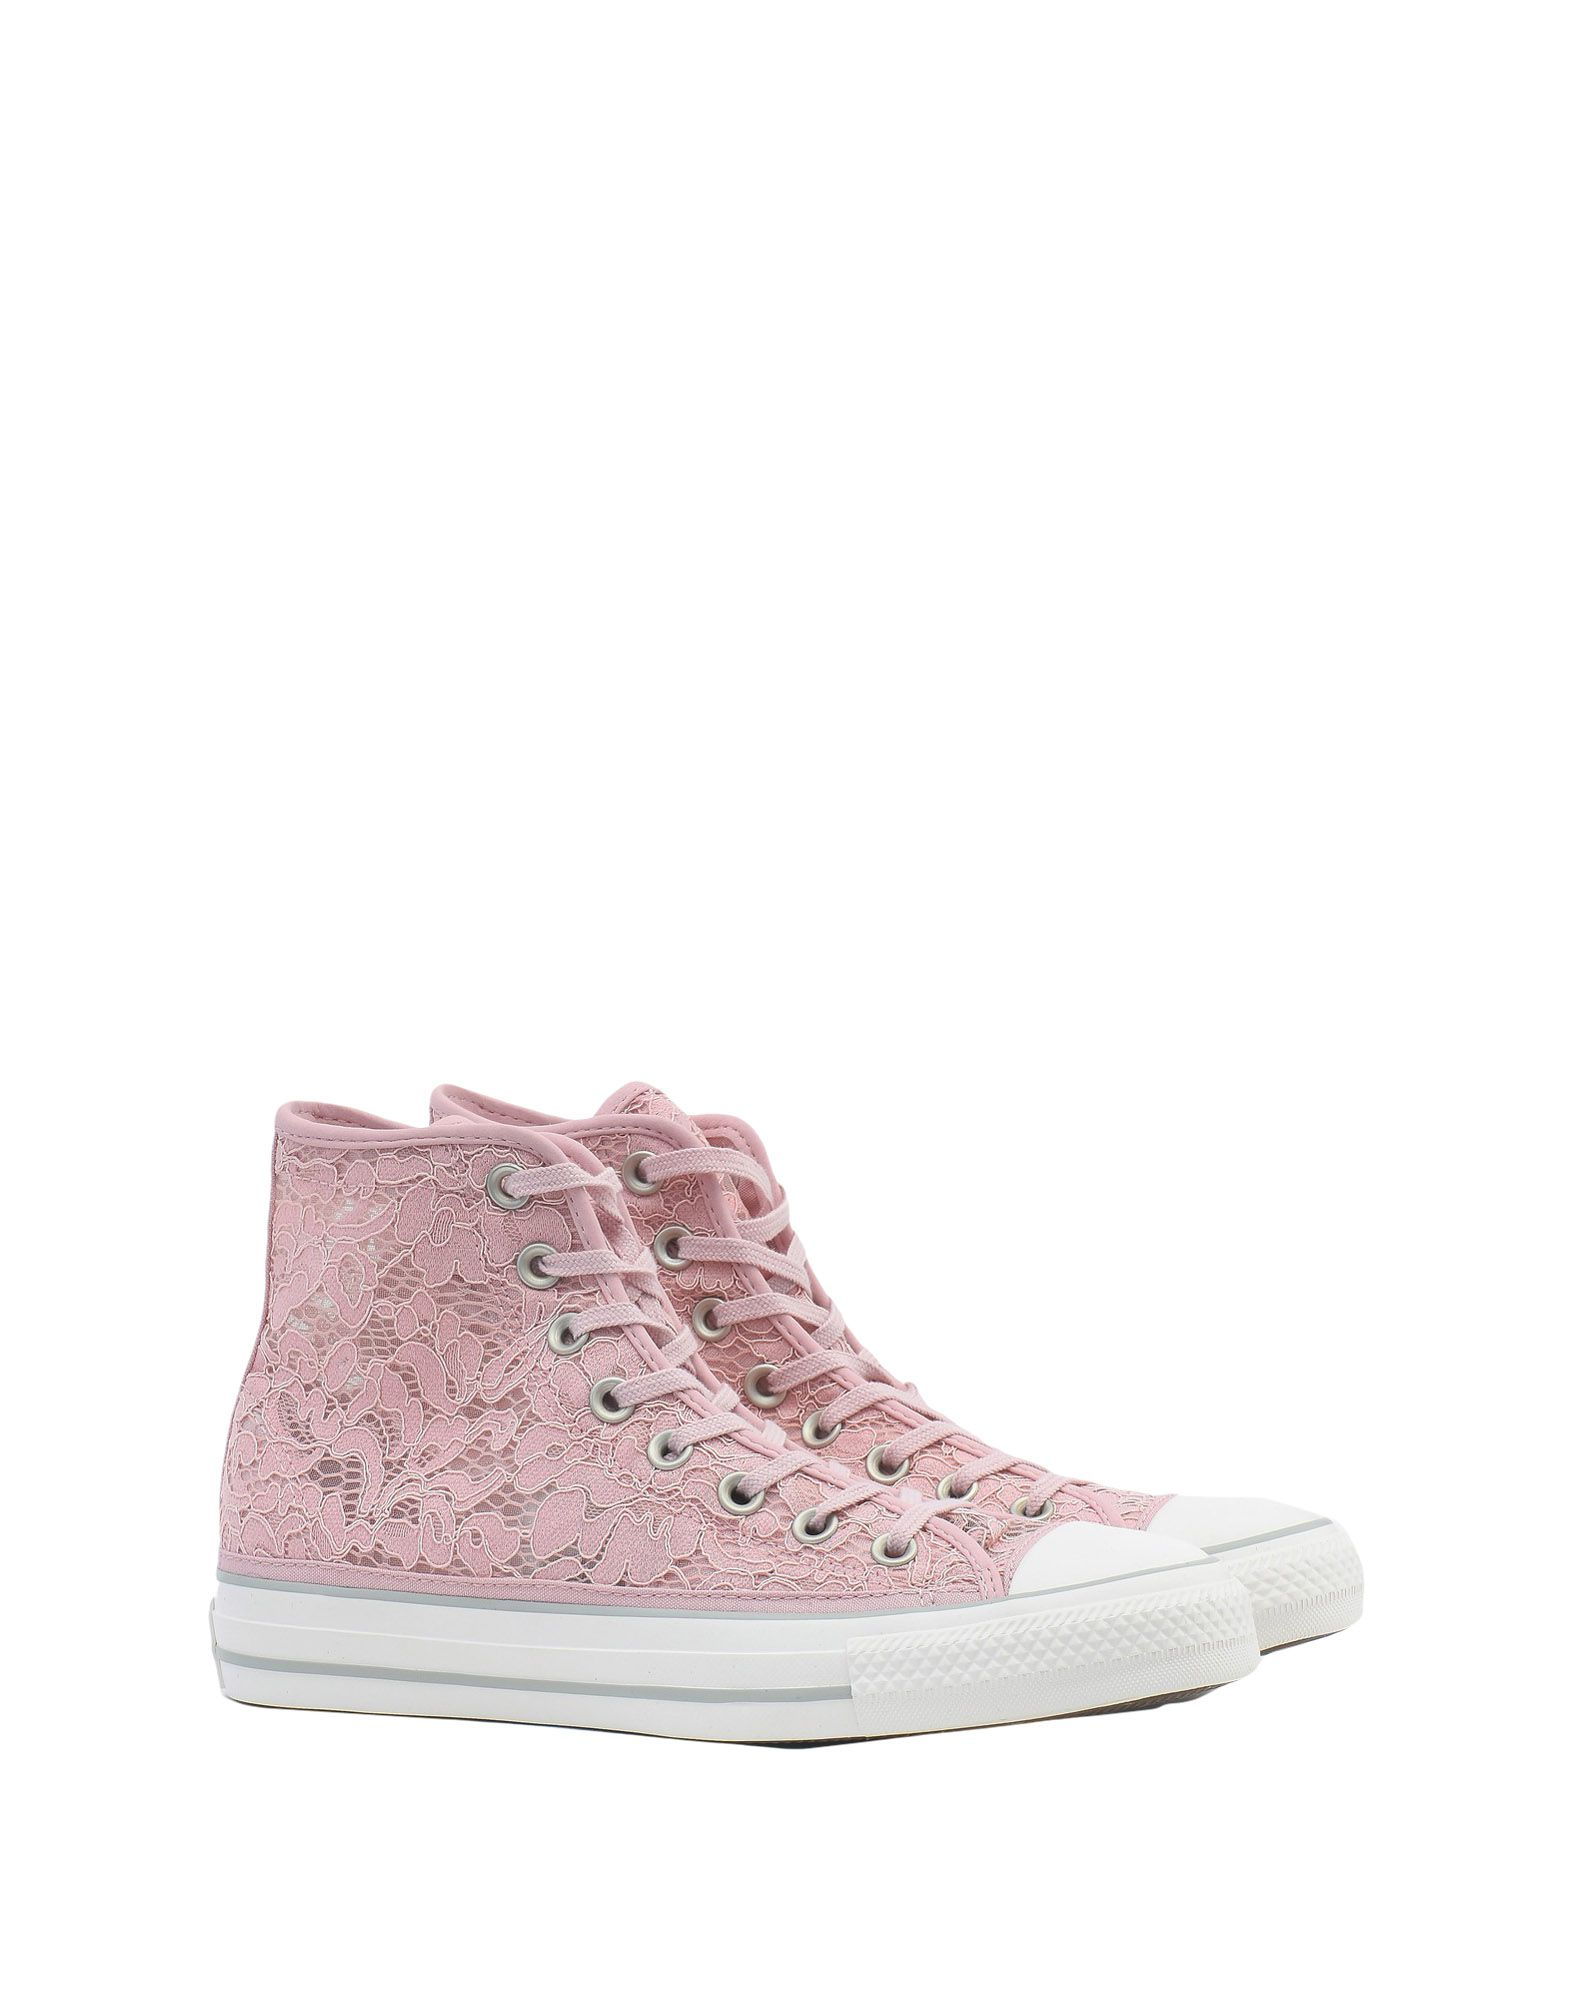 Sneakers Converse All Star Chuck Taylor All Star Donna Hi Flower Lace - Donna Star - 11509238PO 25b689